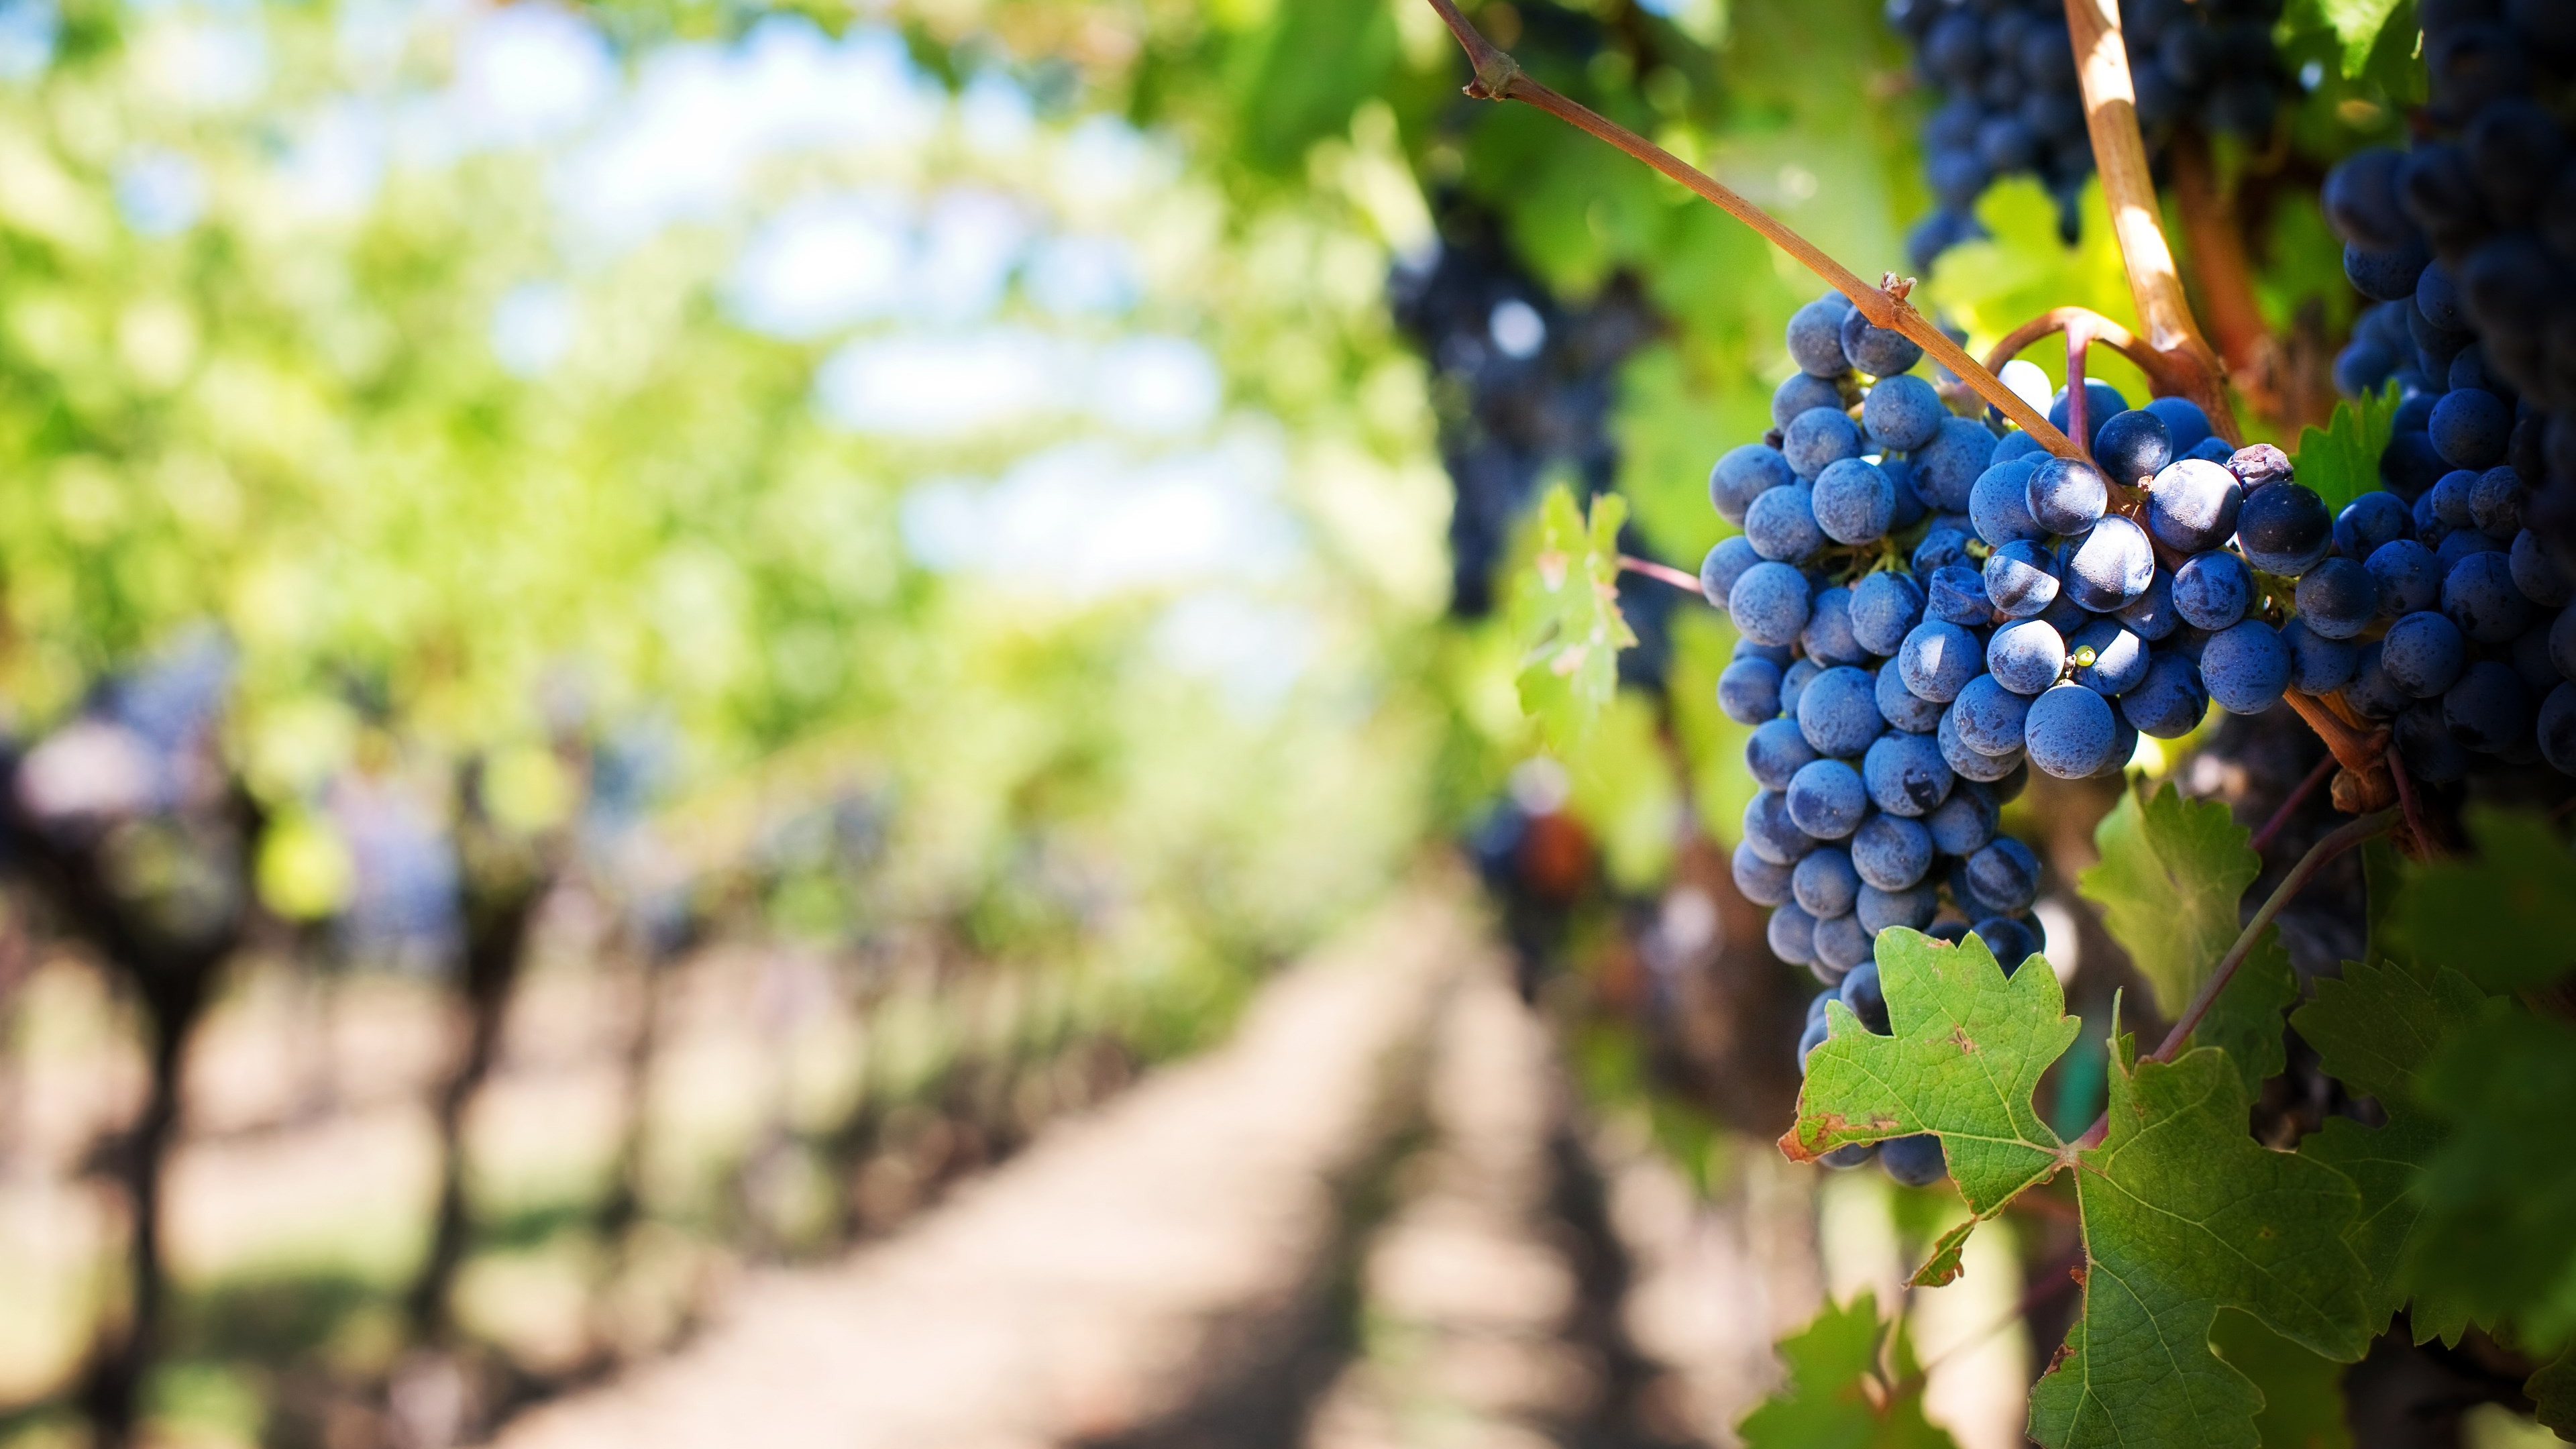 Grapes in vineyard | 3840x2160 wallpaper